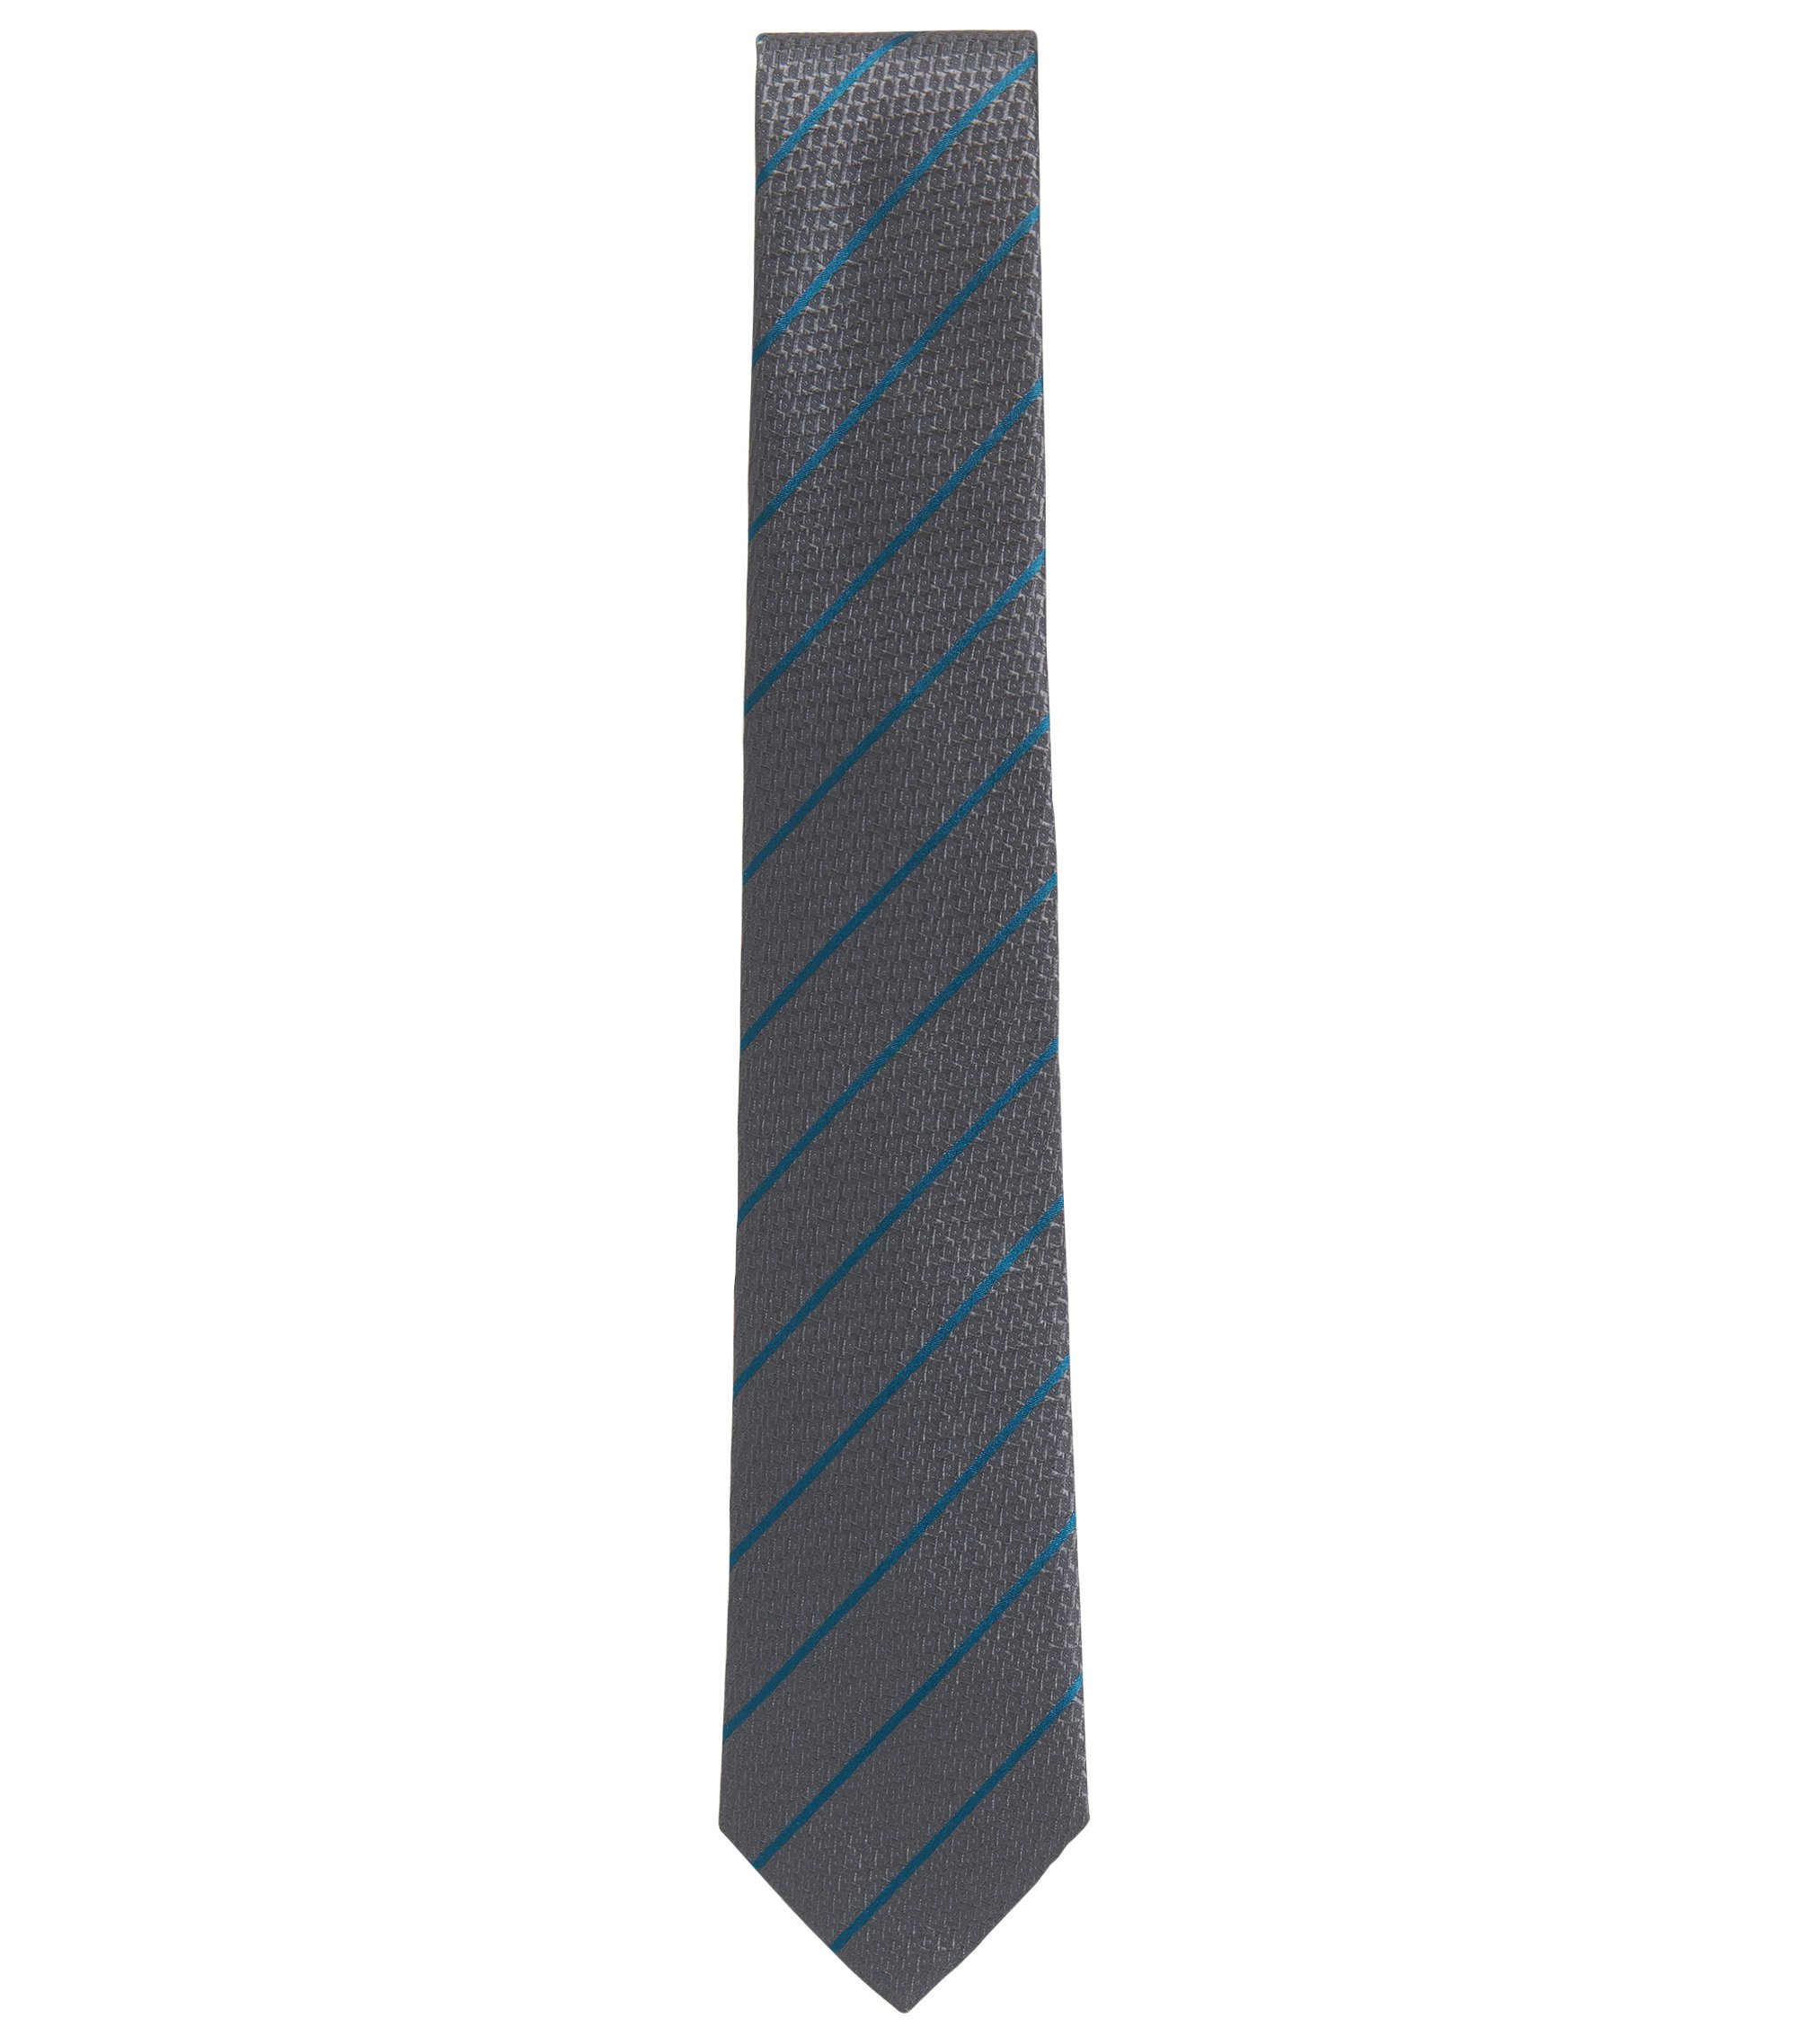 BOSS Tailored Italian Silk Tie, Grey